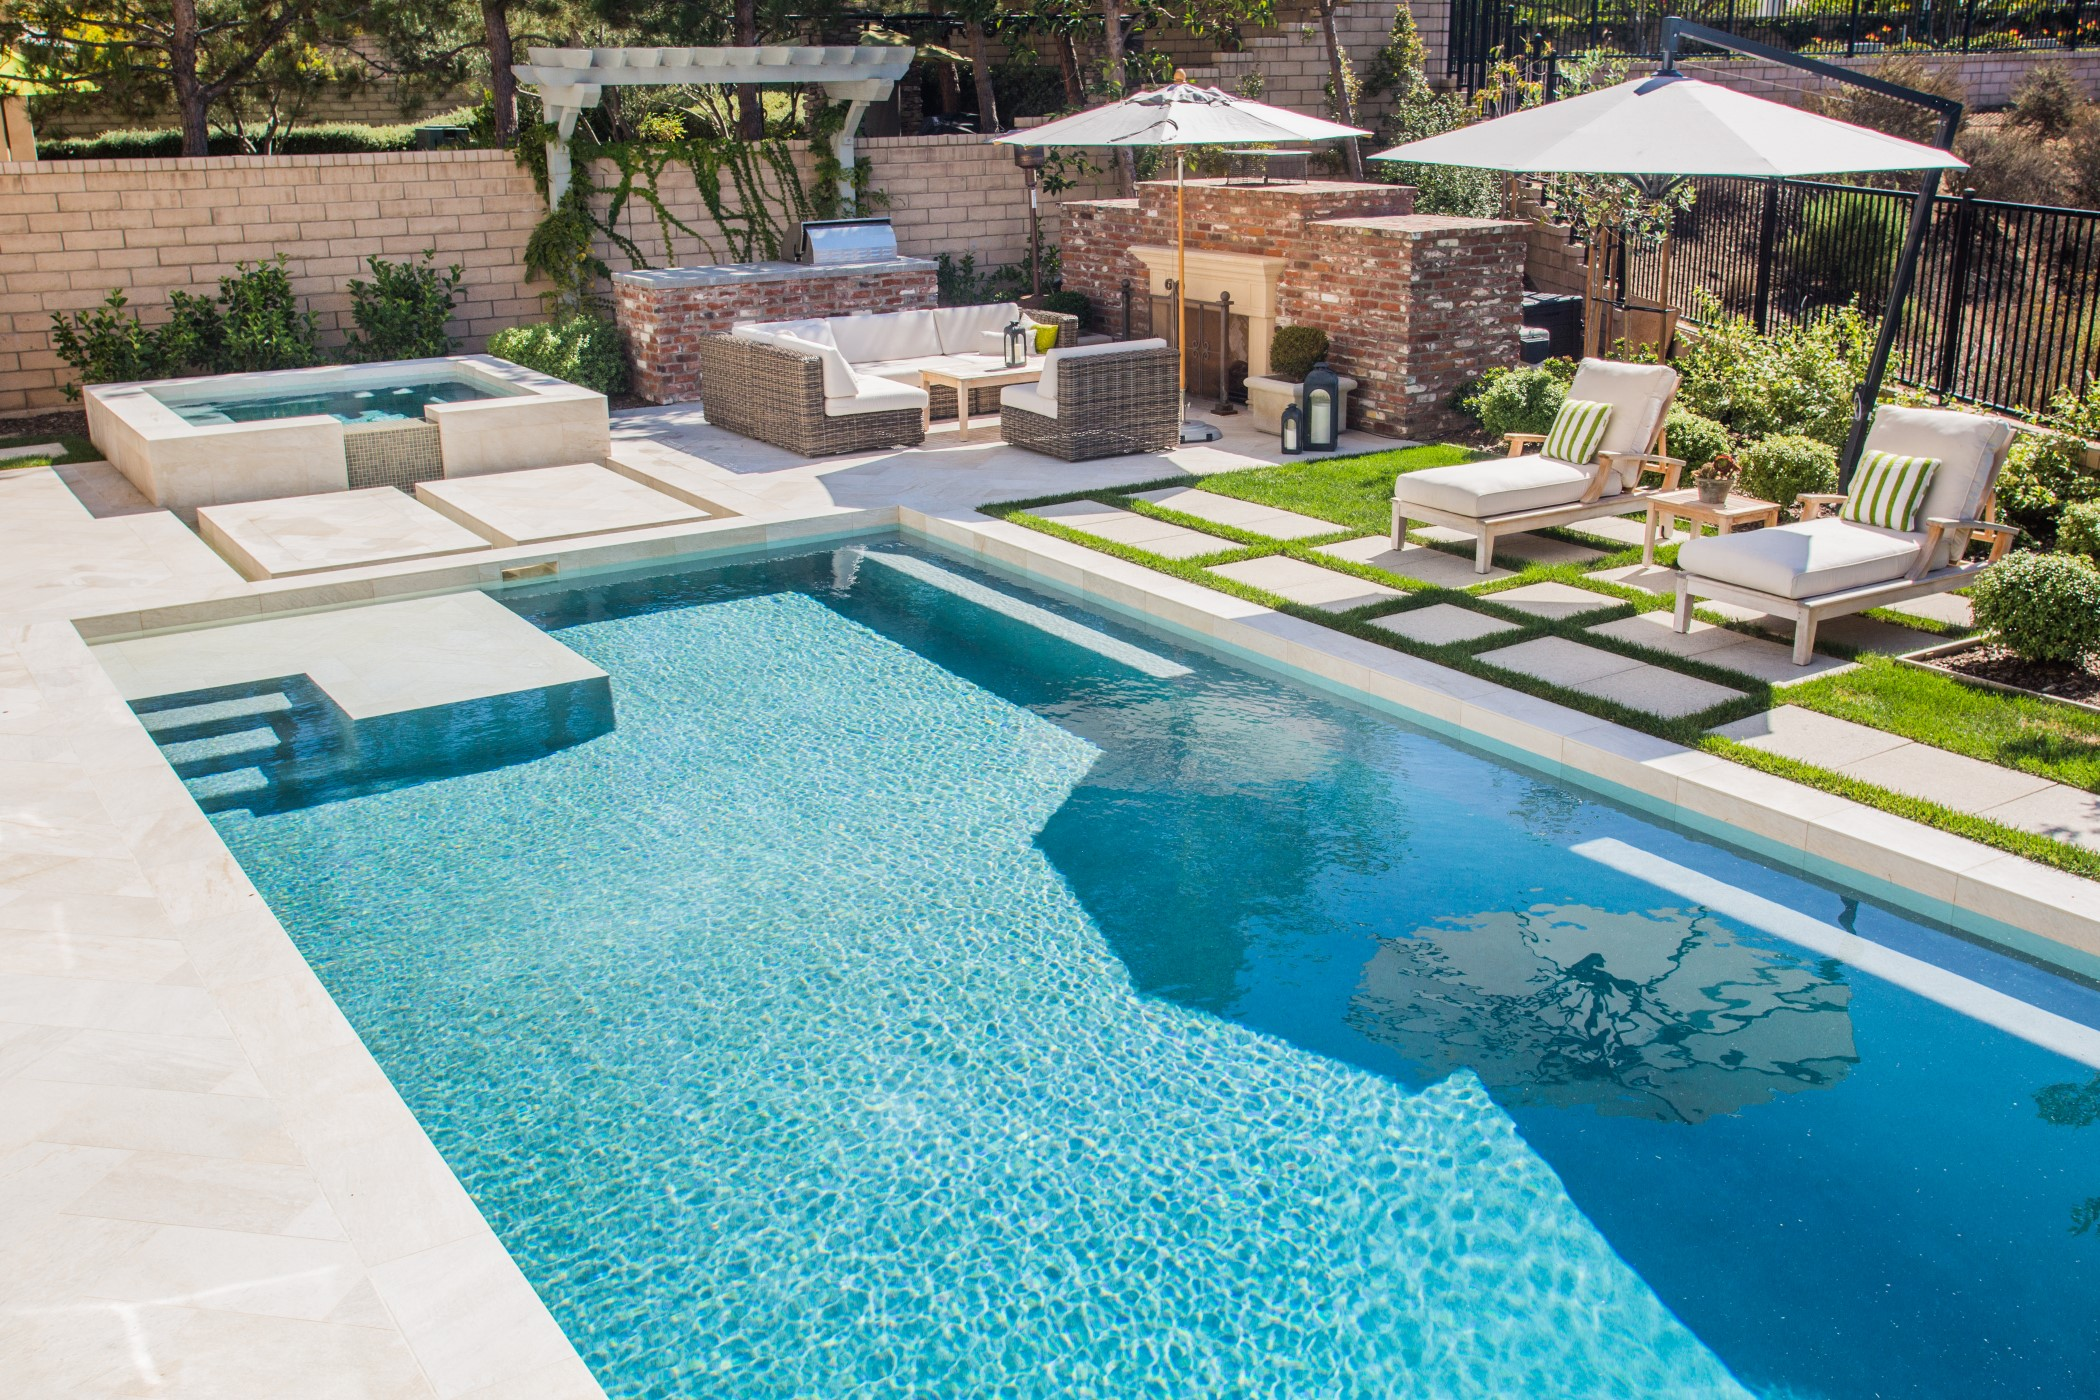 The pool doctor san diego pool builder new web presence for Pool design website